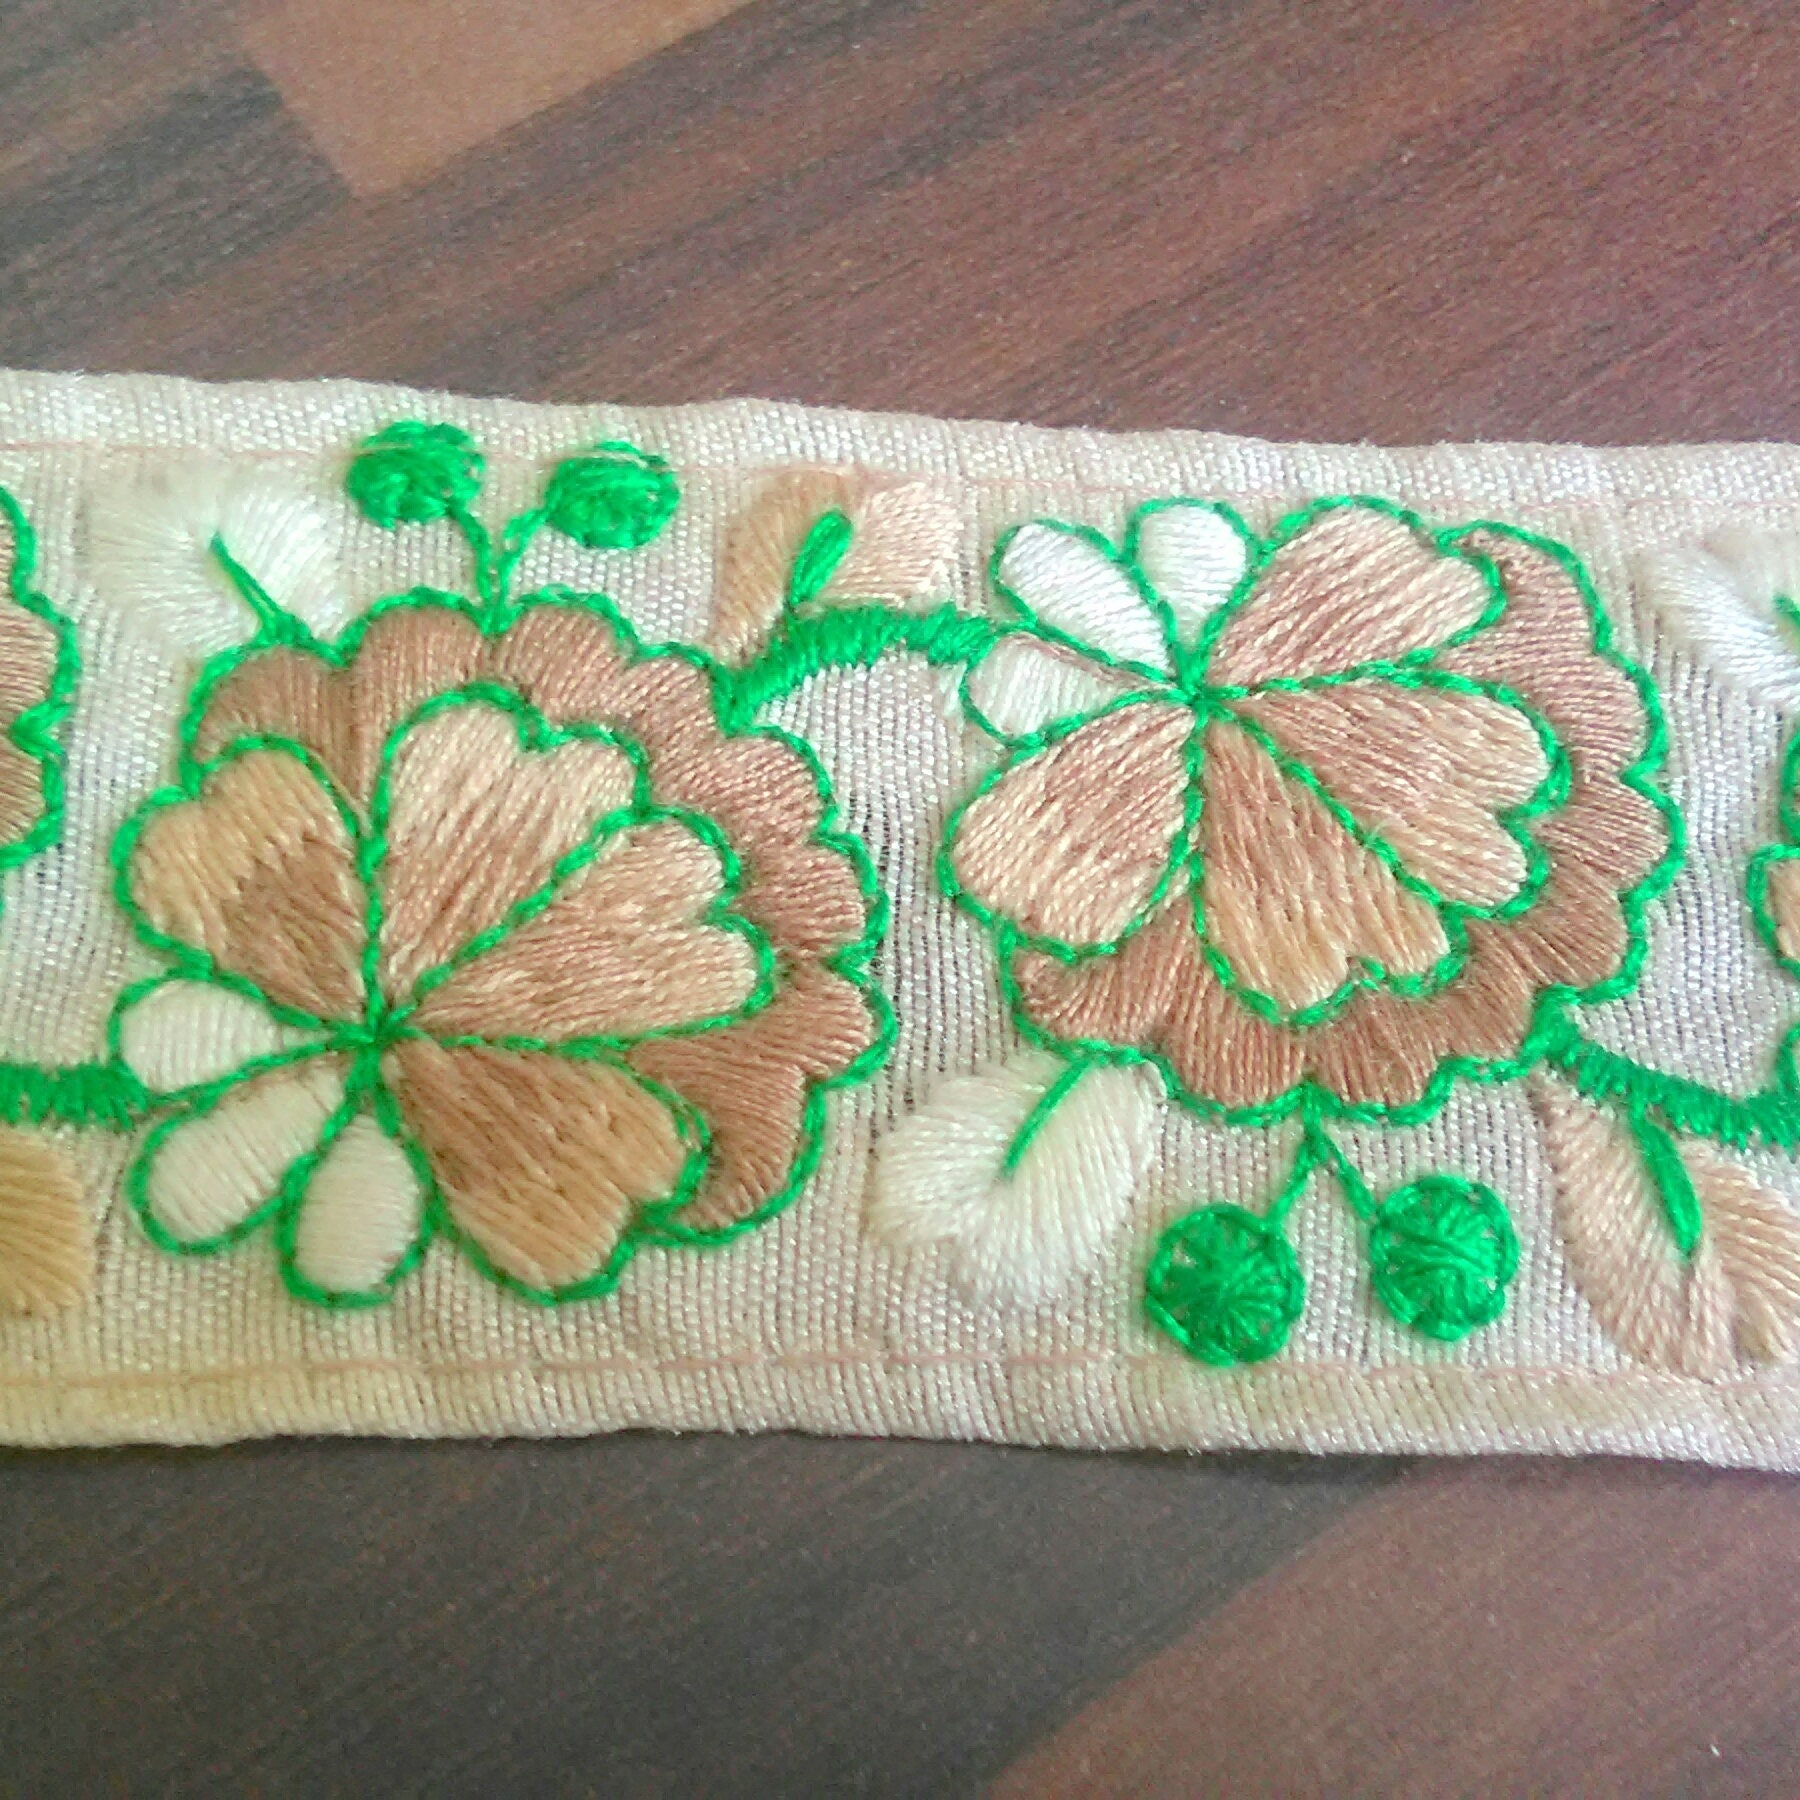 Decorative Fabric Trim Fabric Embroidered Trim By The Yard Indian Laces And Trims